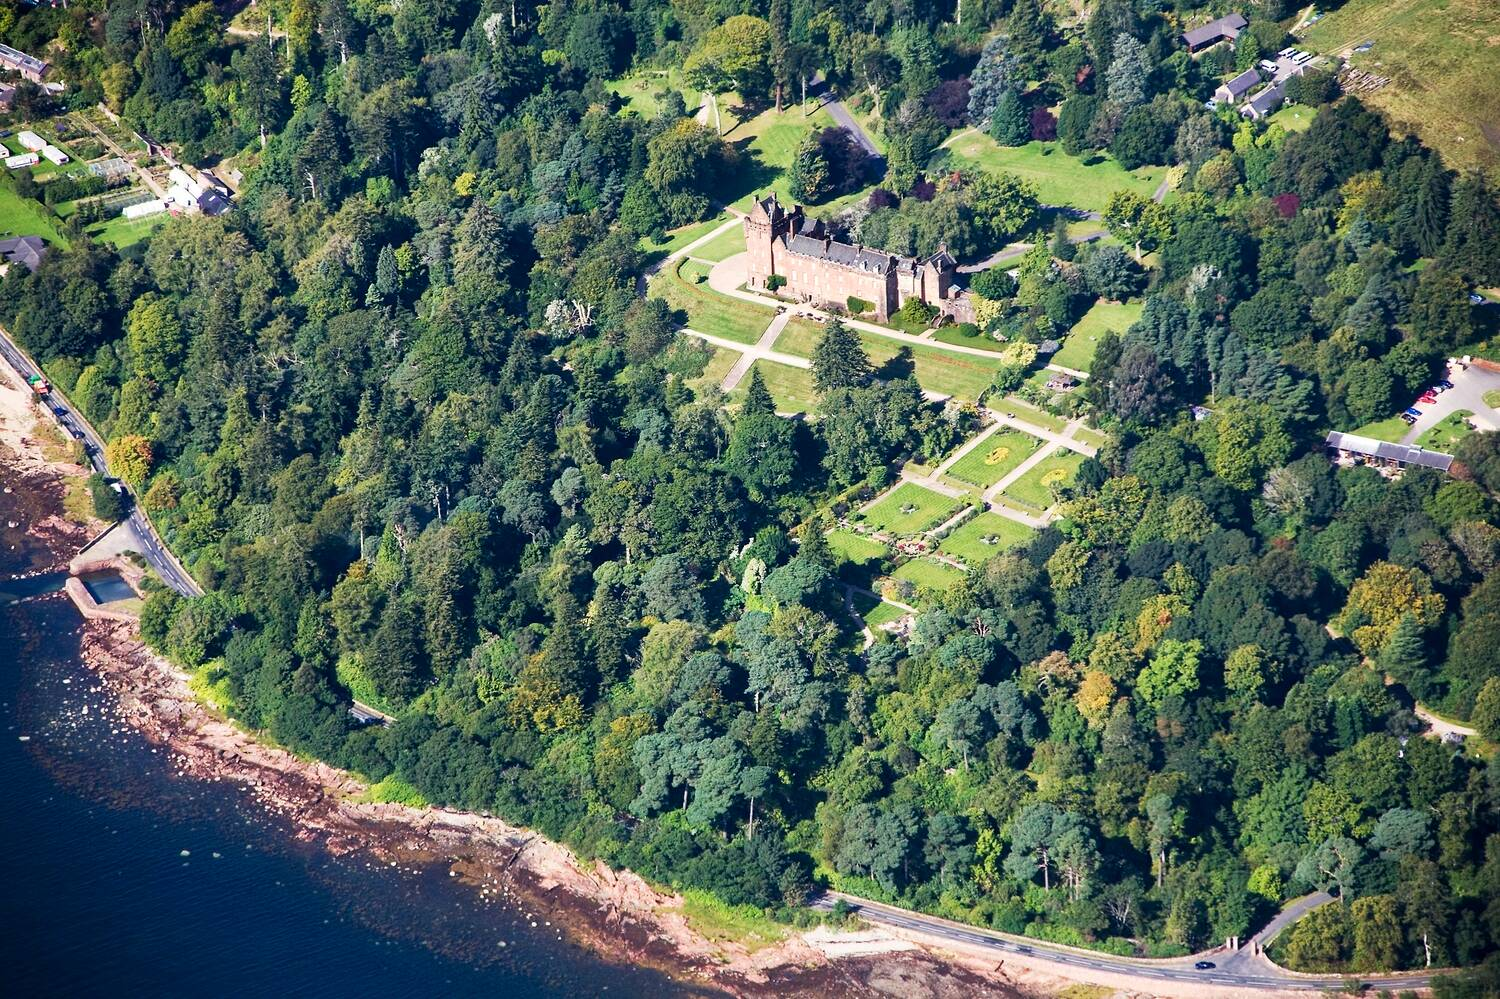 An aerial view of Brodick Castle, Garden and Country Park on Arran. The glistening blue bay can be seen in the bottom left corner. The castle can be seen with the garden in front, all surrounded by green woodland.